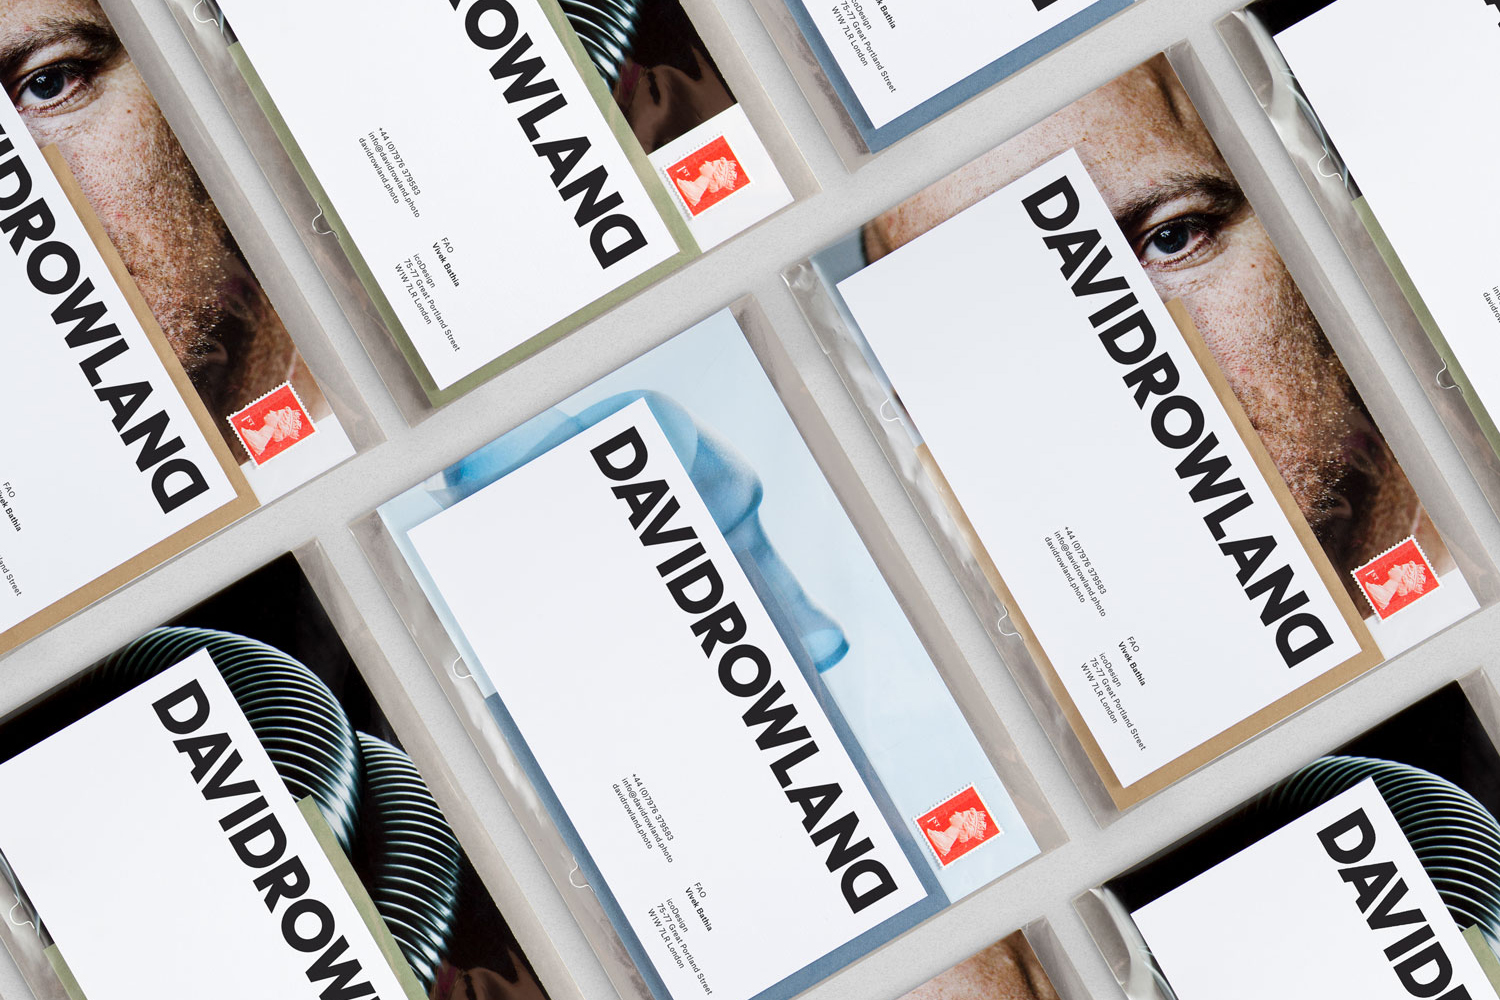 Brand identity and mailers by London-based graphic design studio ico Design for photographer David Rowland